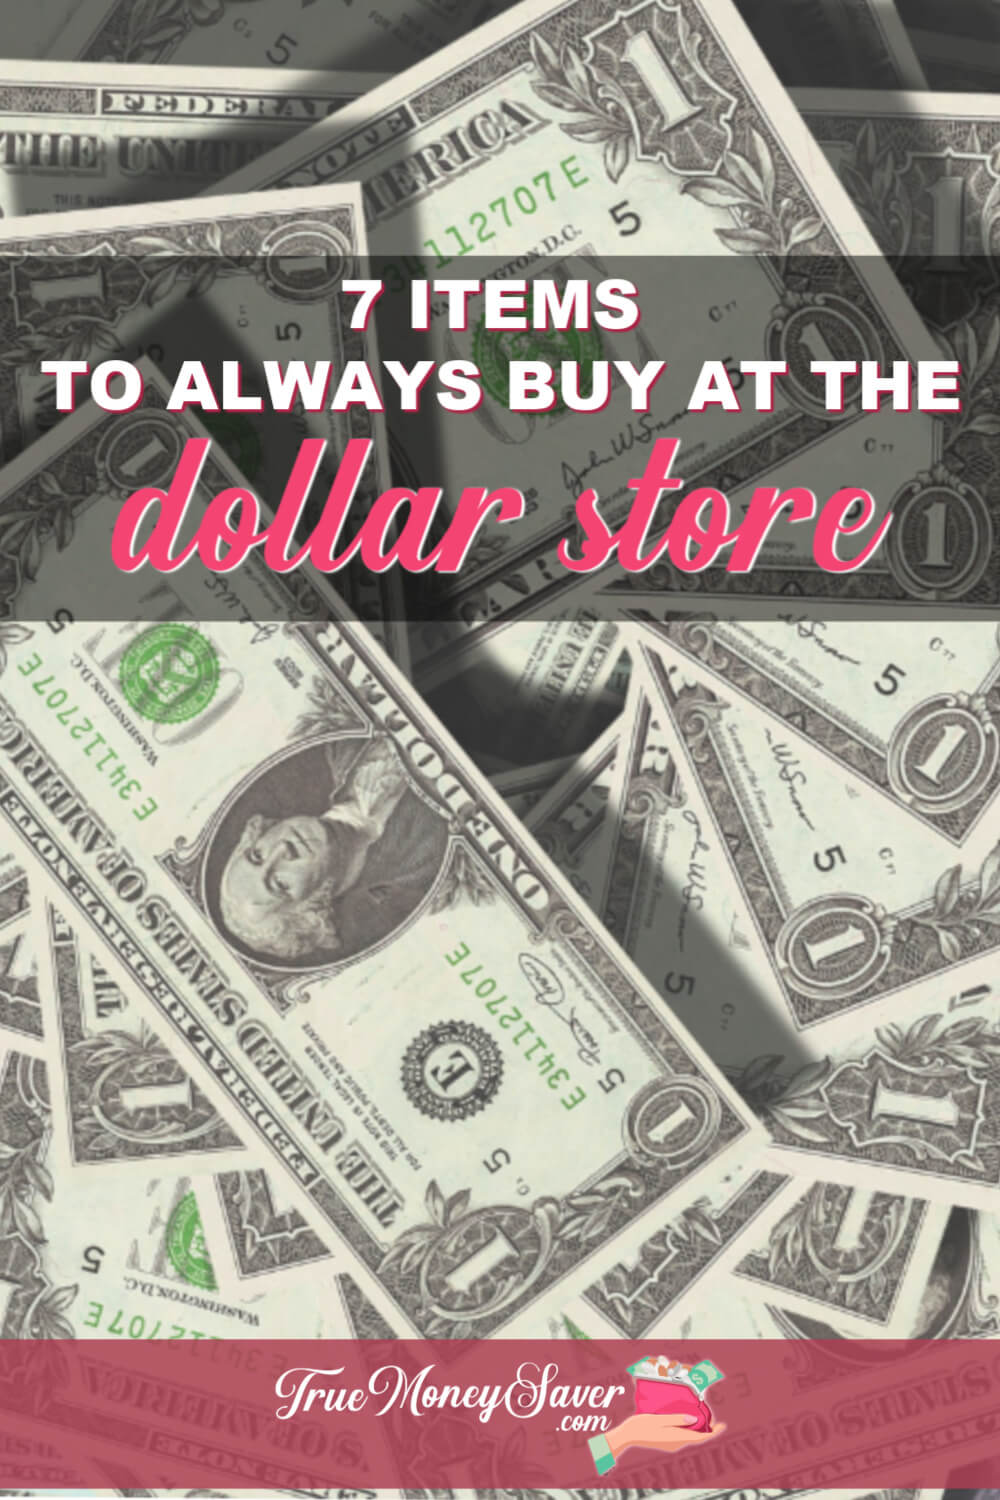 There are items that are WAY CHEAPER to buy at the Dollar Store. Do you know what they are? Check out these deals to get at your nearest dollar store! #dollarstore #savings #dollartree #truecouponing #savingmoney